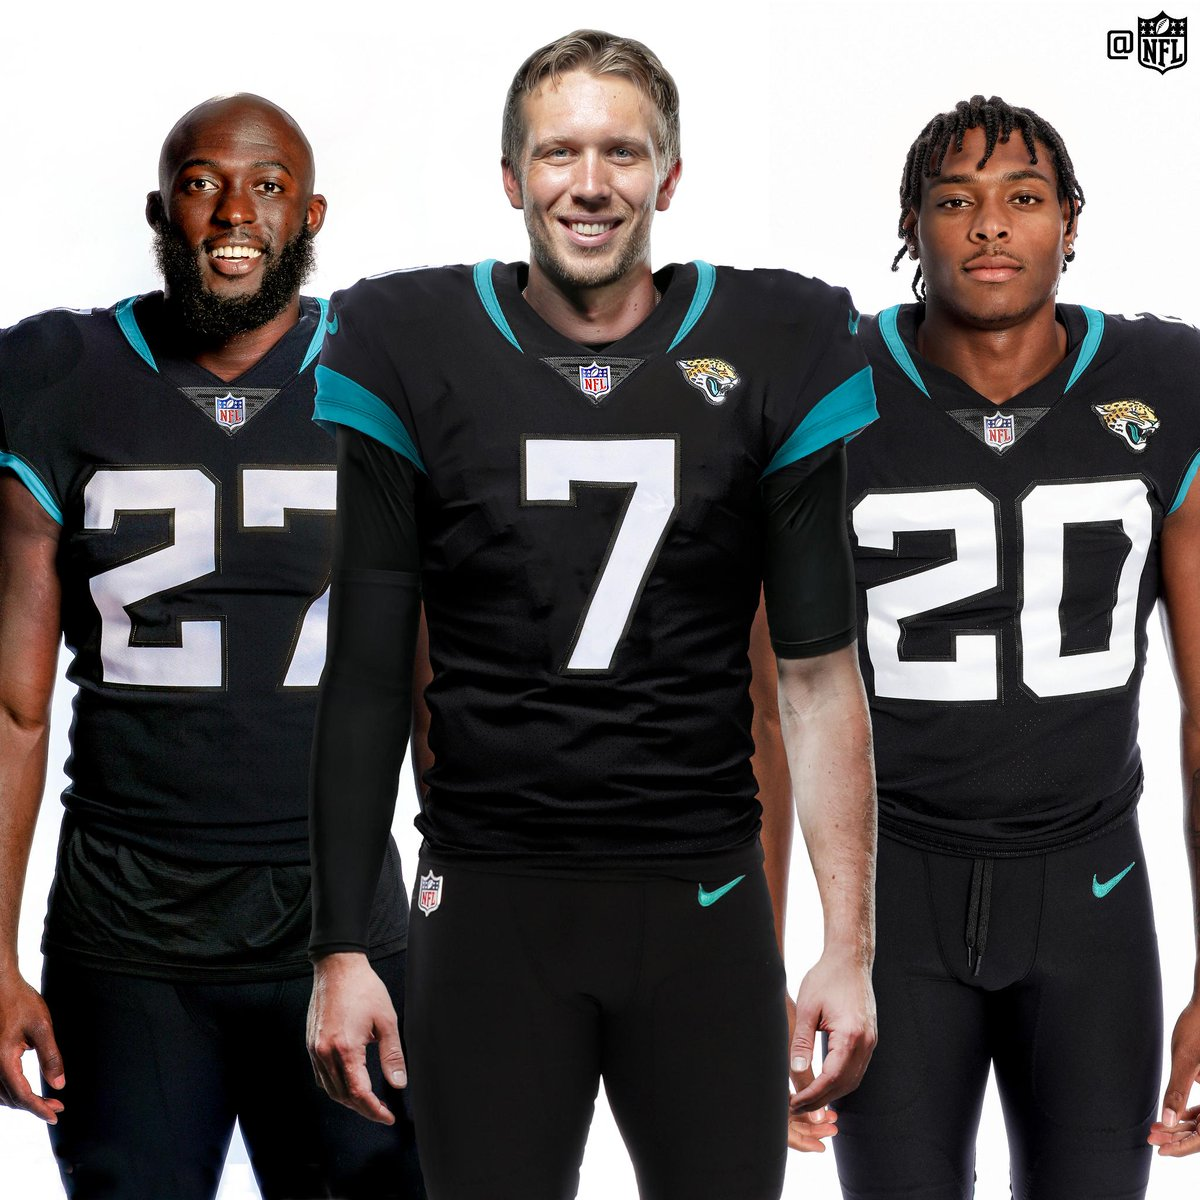 Coming soon to DUUUVAL 🙌